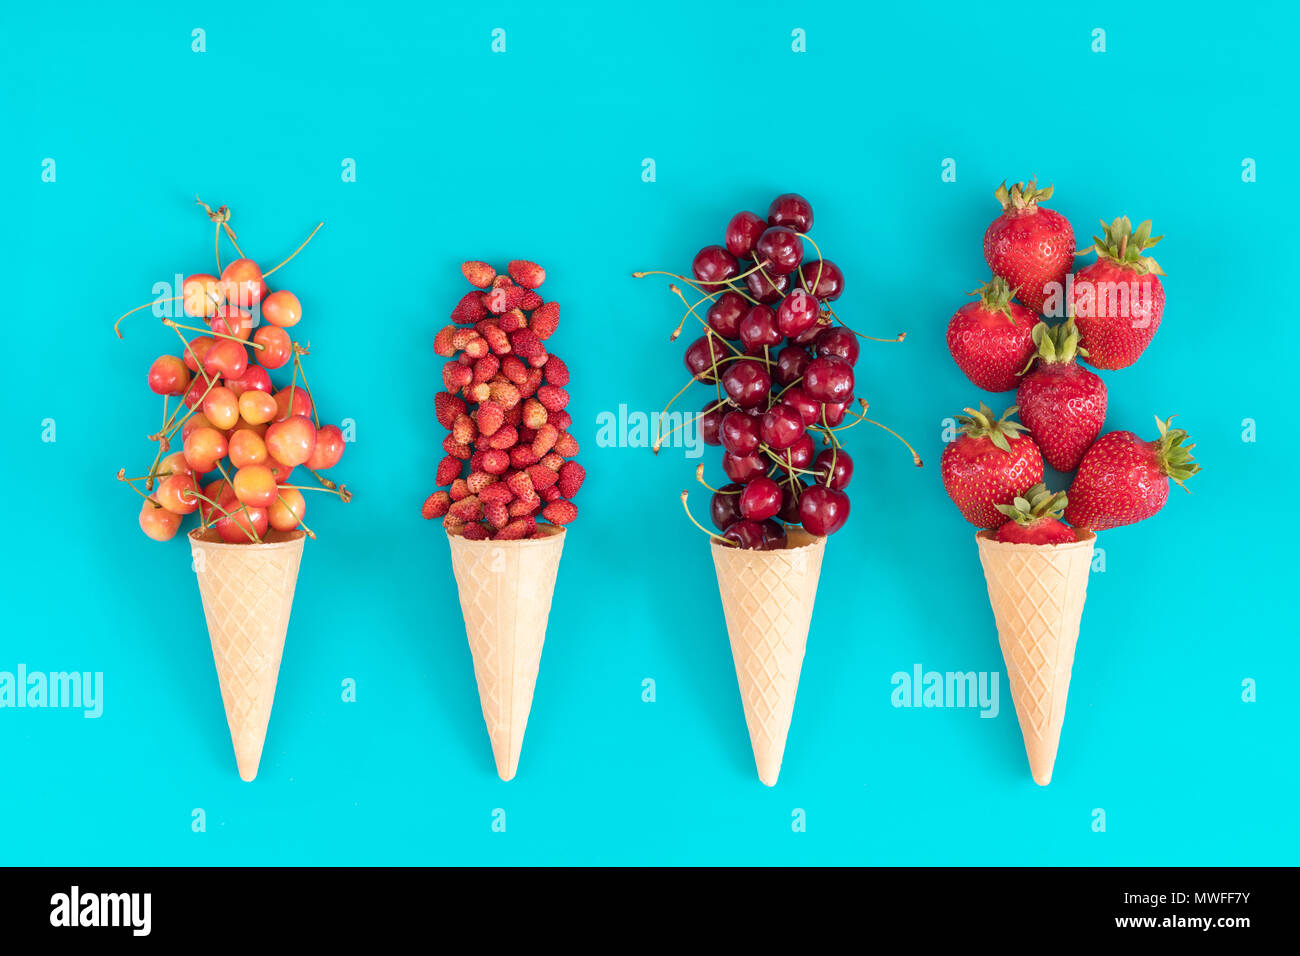 Four waffle cones with red cherries, wild strawberries, yellow cherries, and strawberryes on blue surface. Flat lay, top view sweet food background. - Stock Image